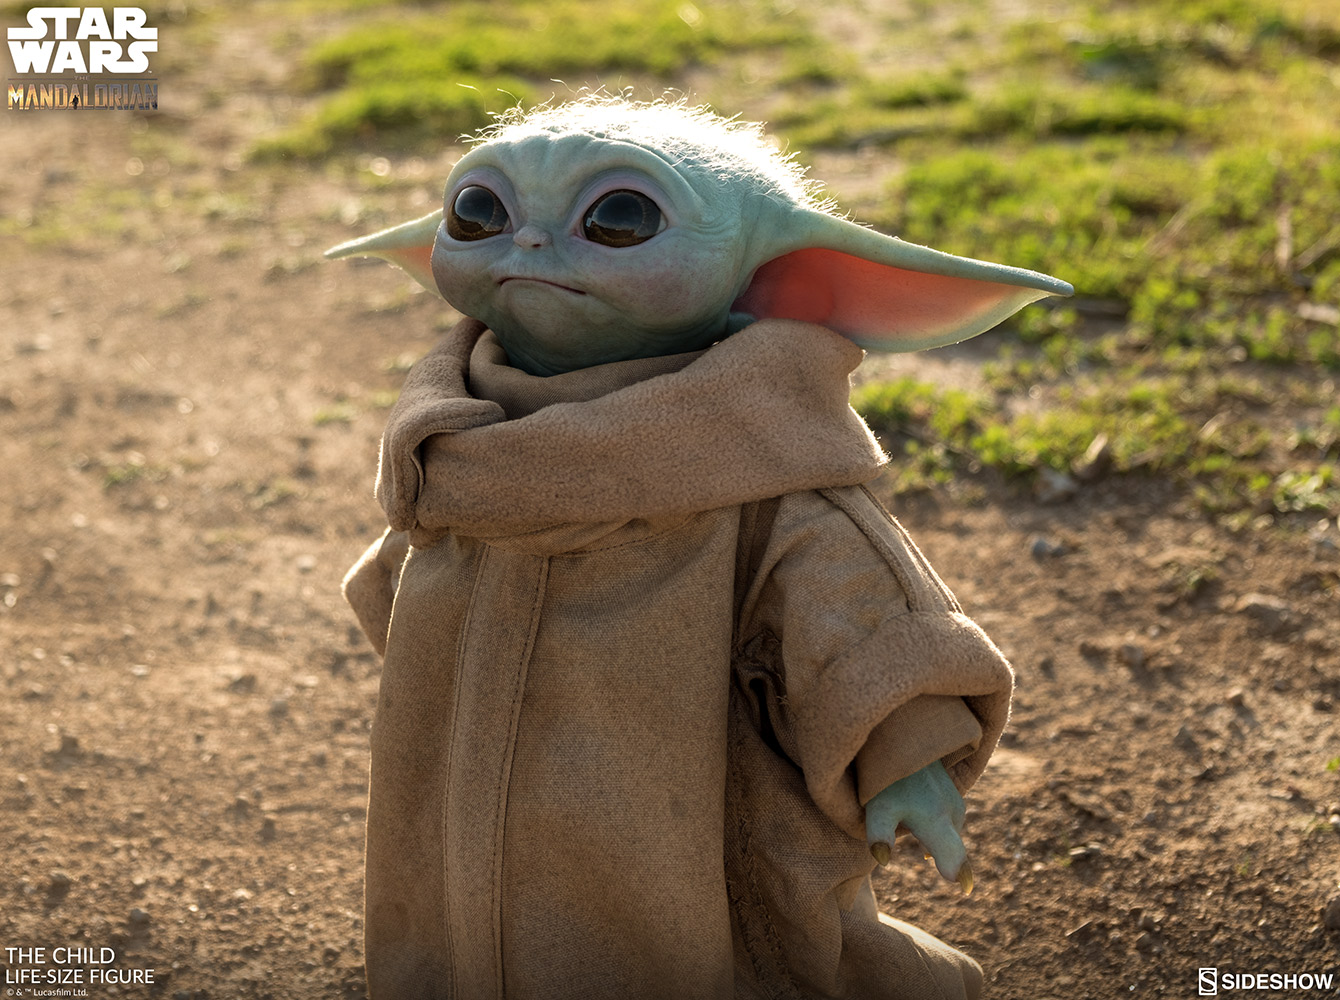 Life size Baby Yoda available for pre-order